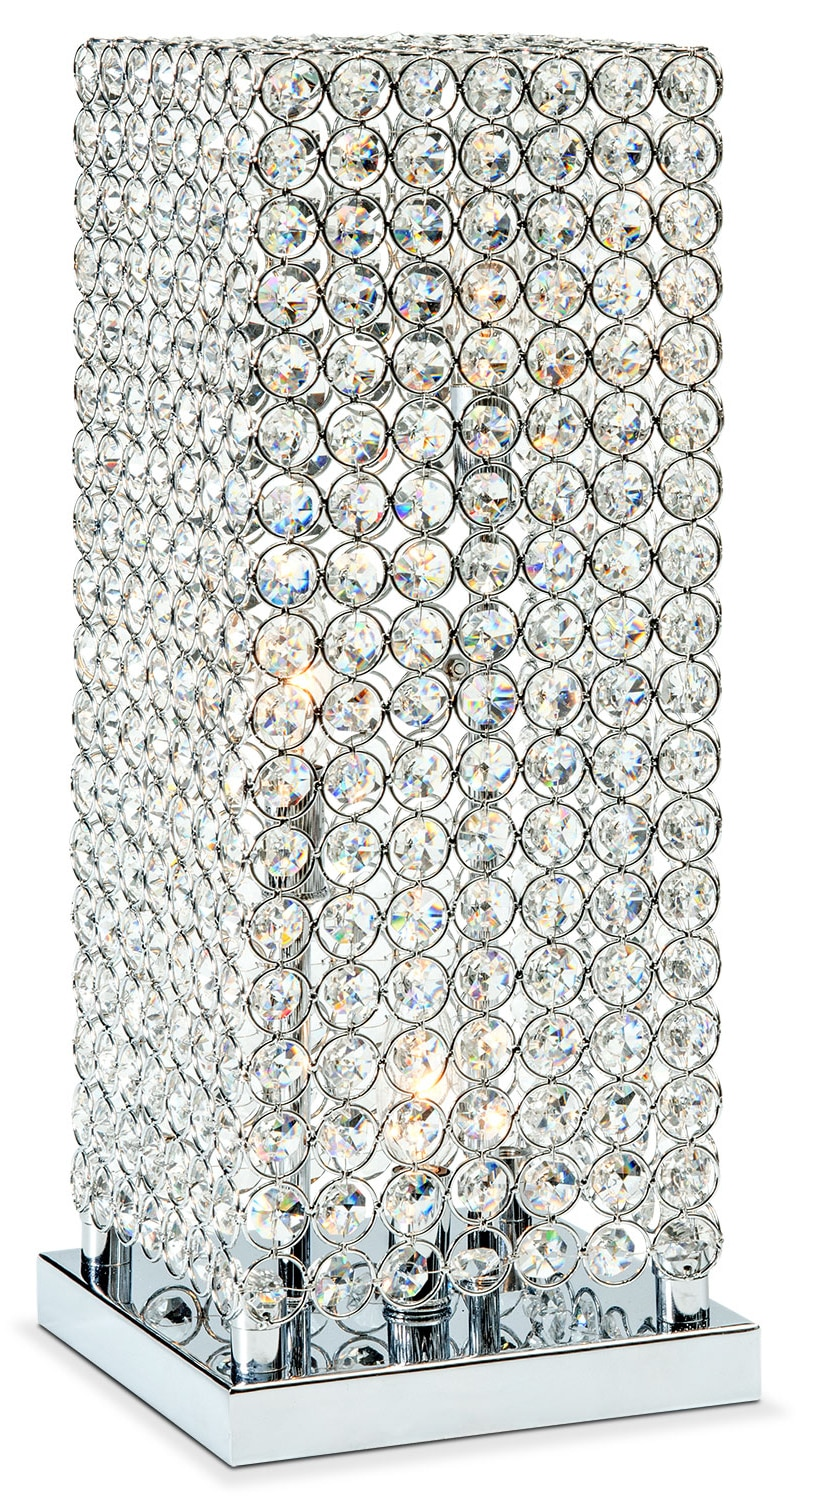 Crystal Tower Table Lamp  Value City Furniture and Mattresses